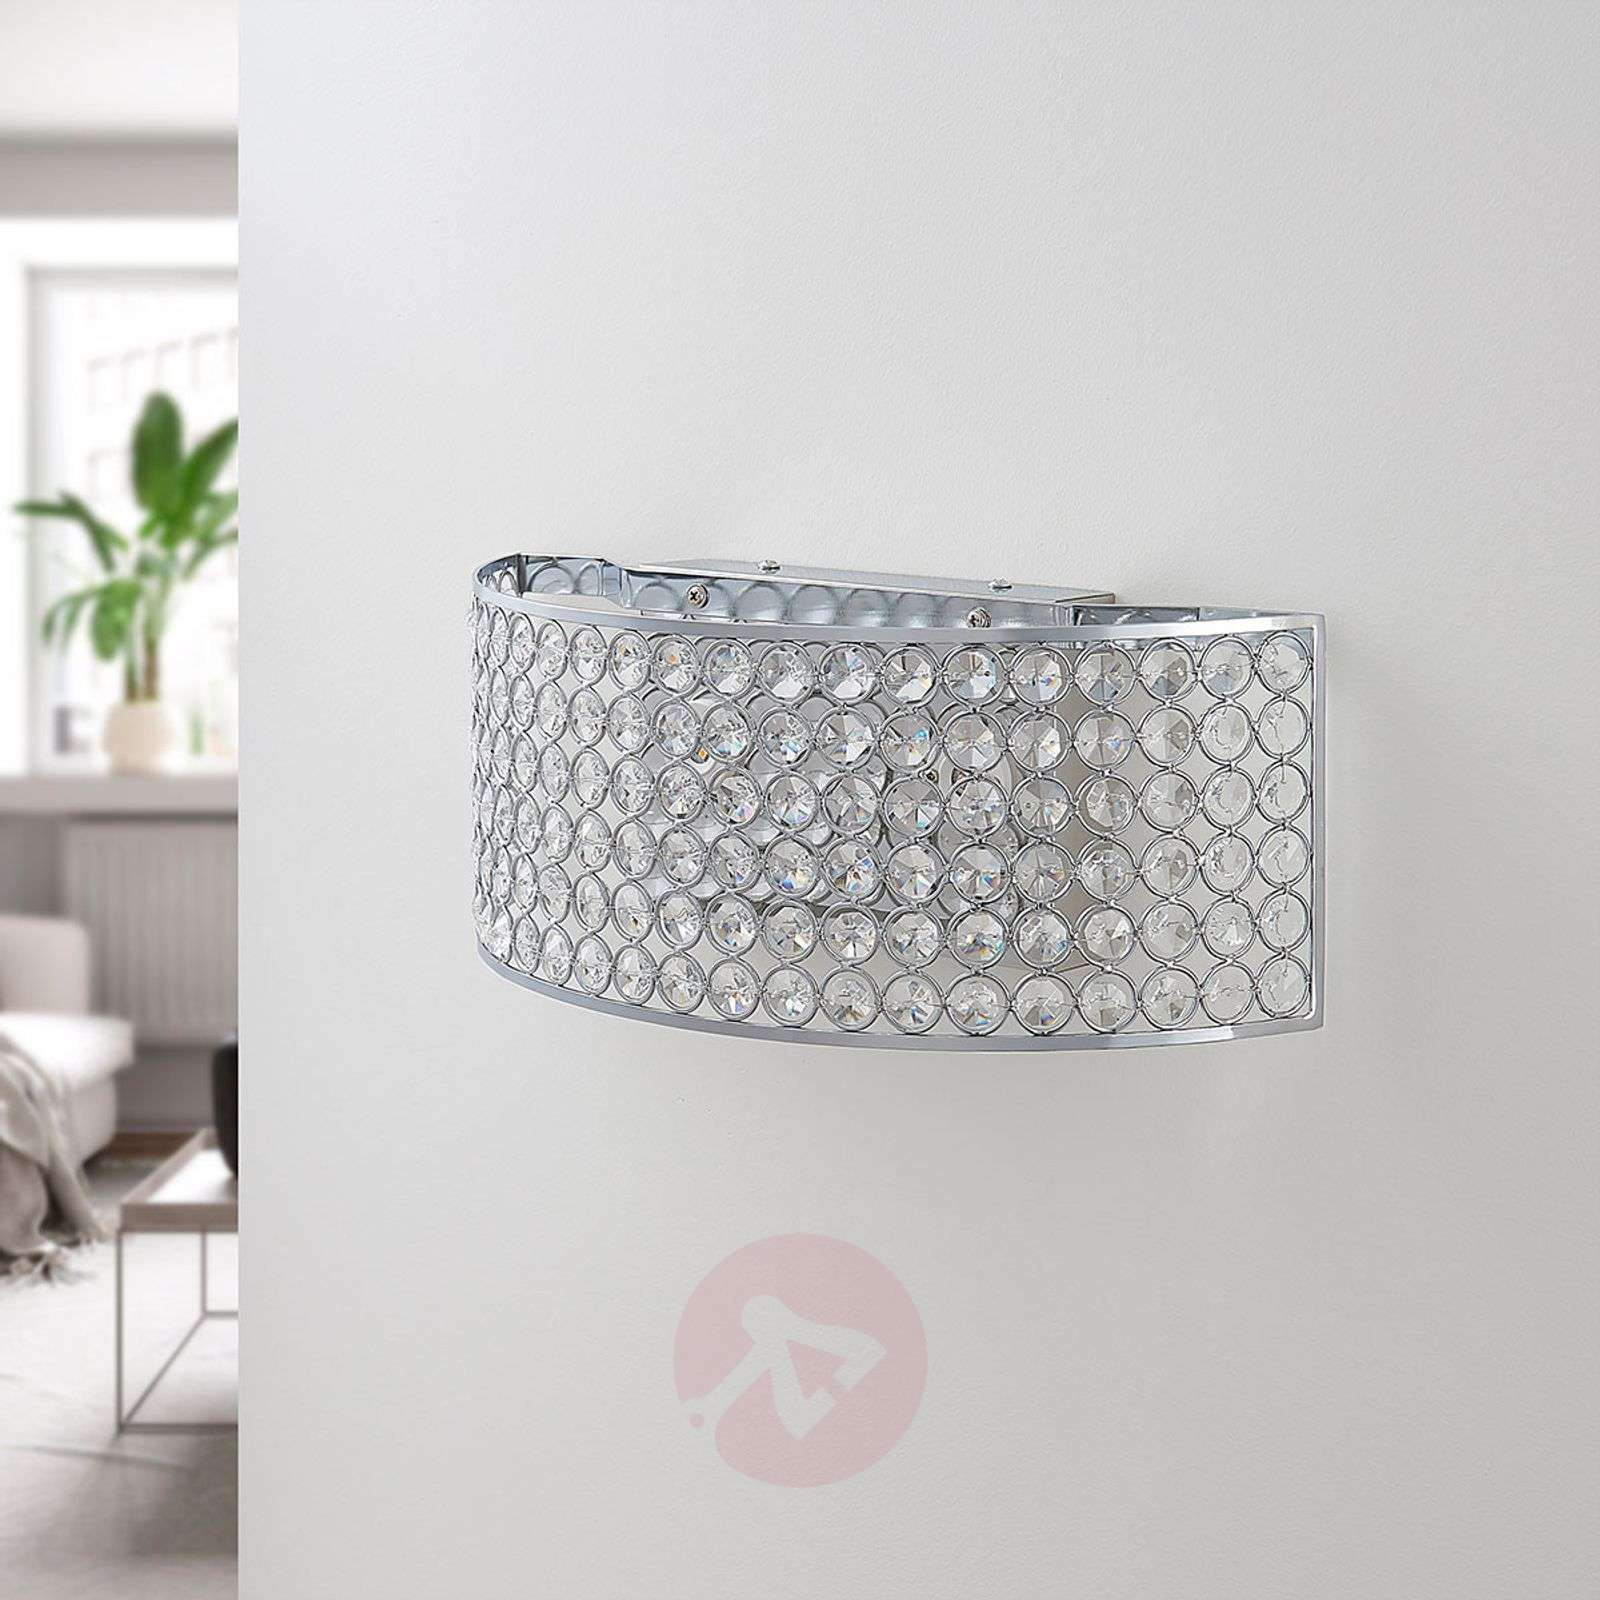 Applique LED en cristal de verre Alizee en chromé-9621798-02